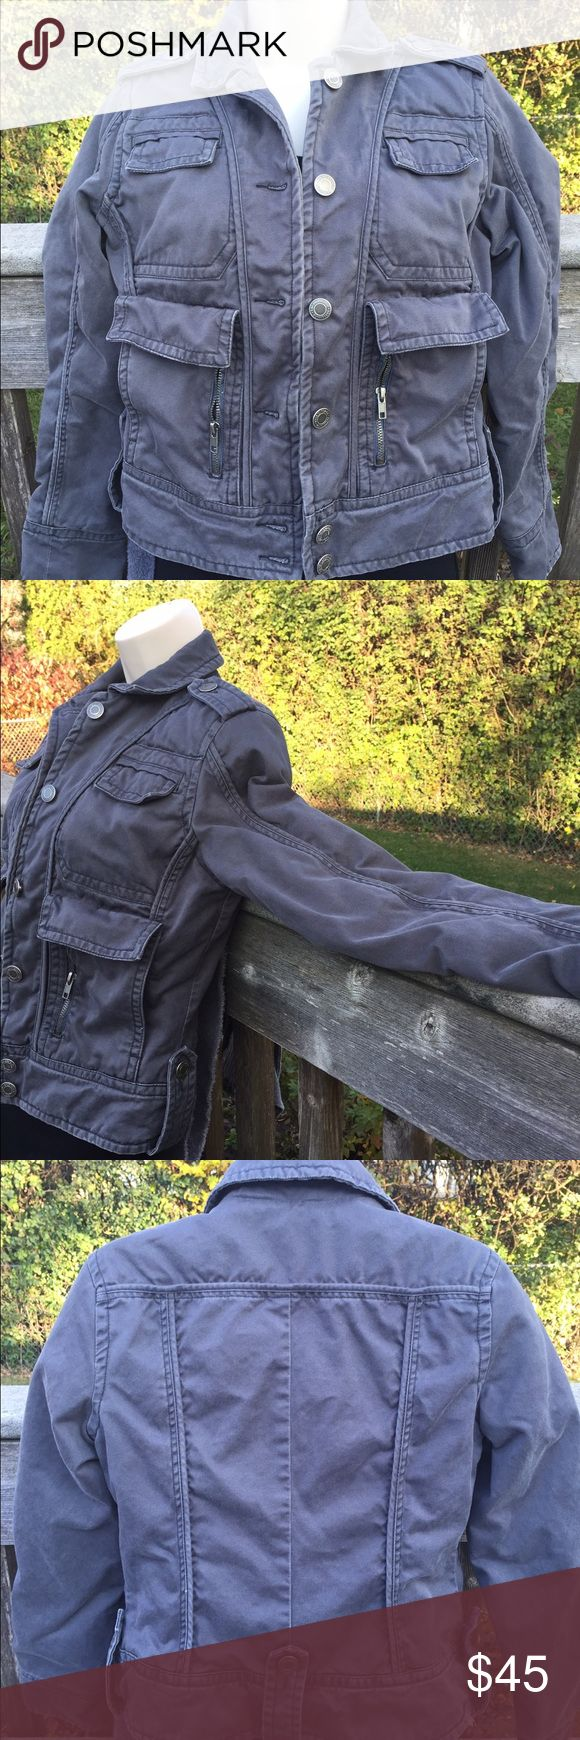 American Eagle Outfitters Jacket 100% cotton outside and 100% quilted nylon inside  measurements to come soon American Eagle Outfitters Jackets & Coats